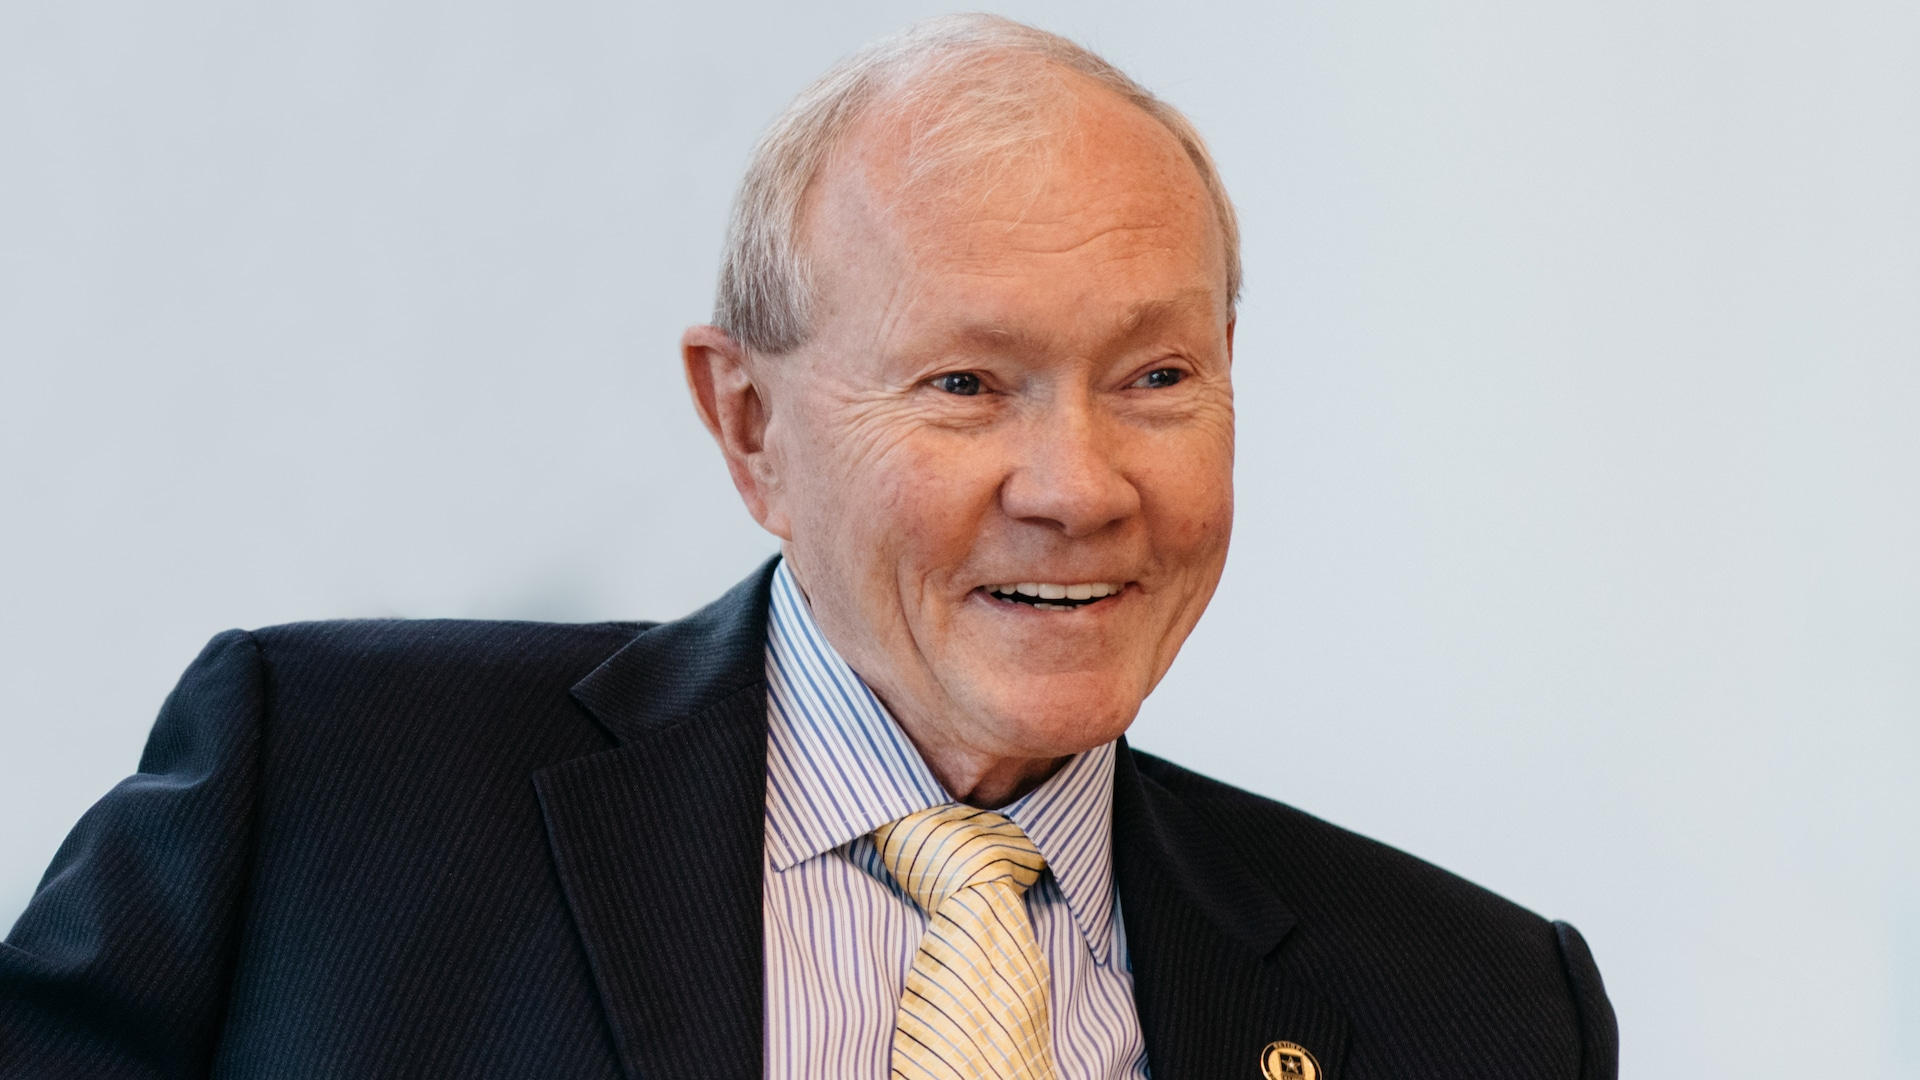 Q&A: Retired Gen. Martin Dempsey on leadership, living a 'felt life'